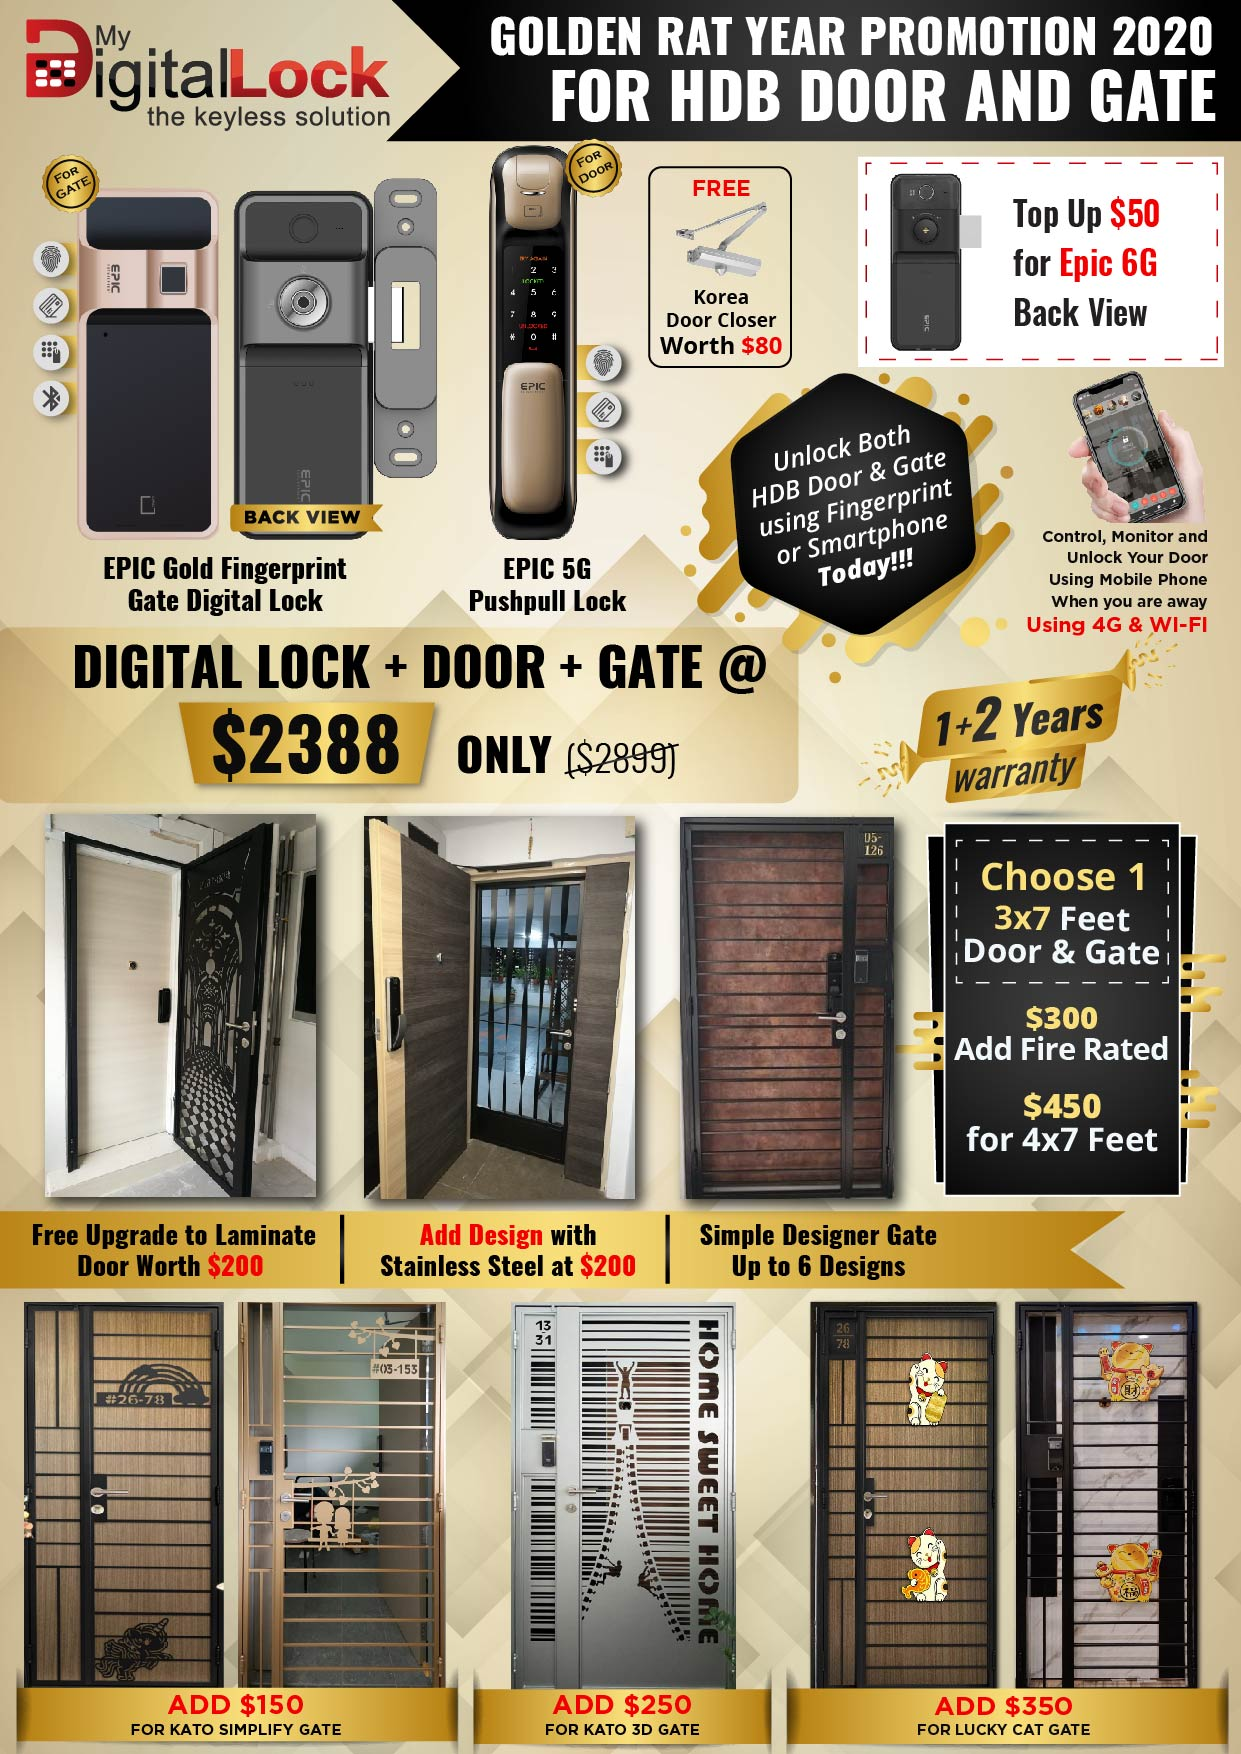 Golden-Rat-Year-HDB-Door-and-Gate-Promotion-with-EPIC-Gold-Fingerprint-and-5G-PushP